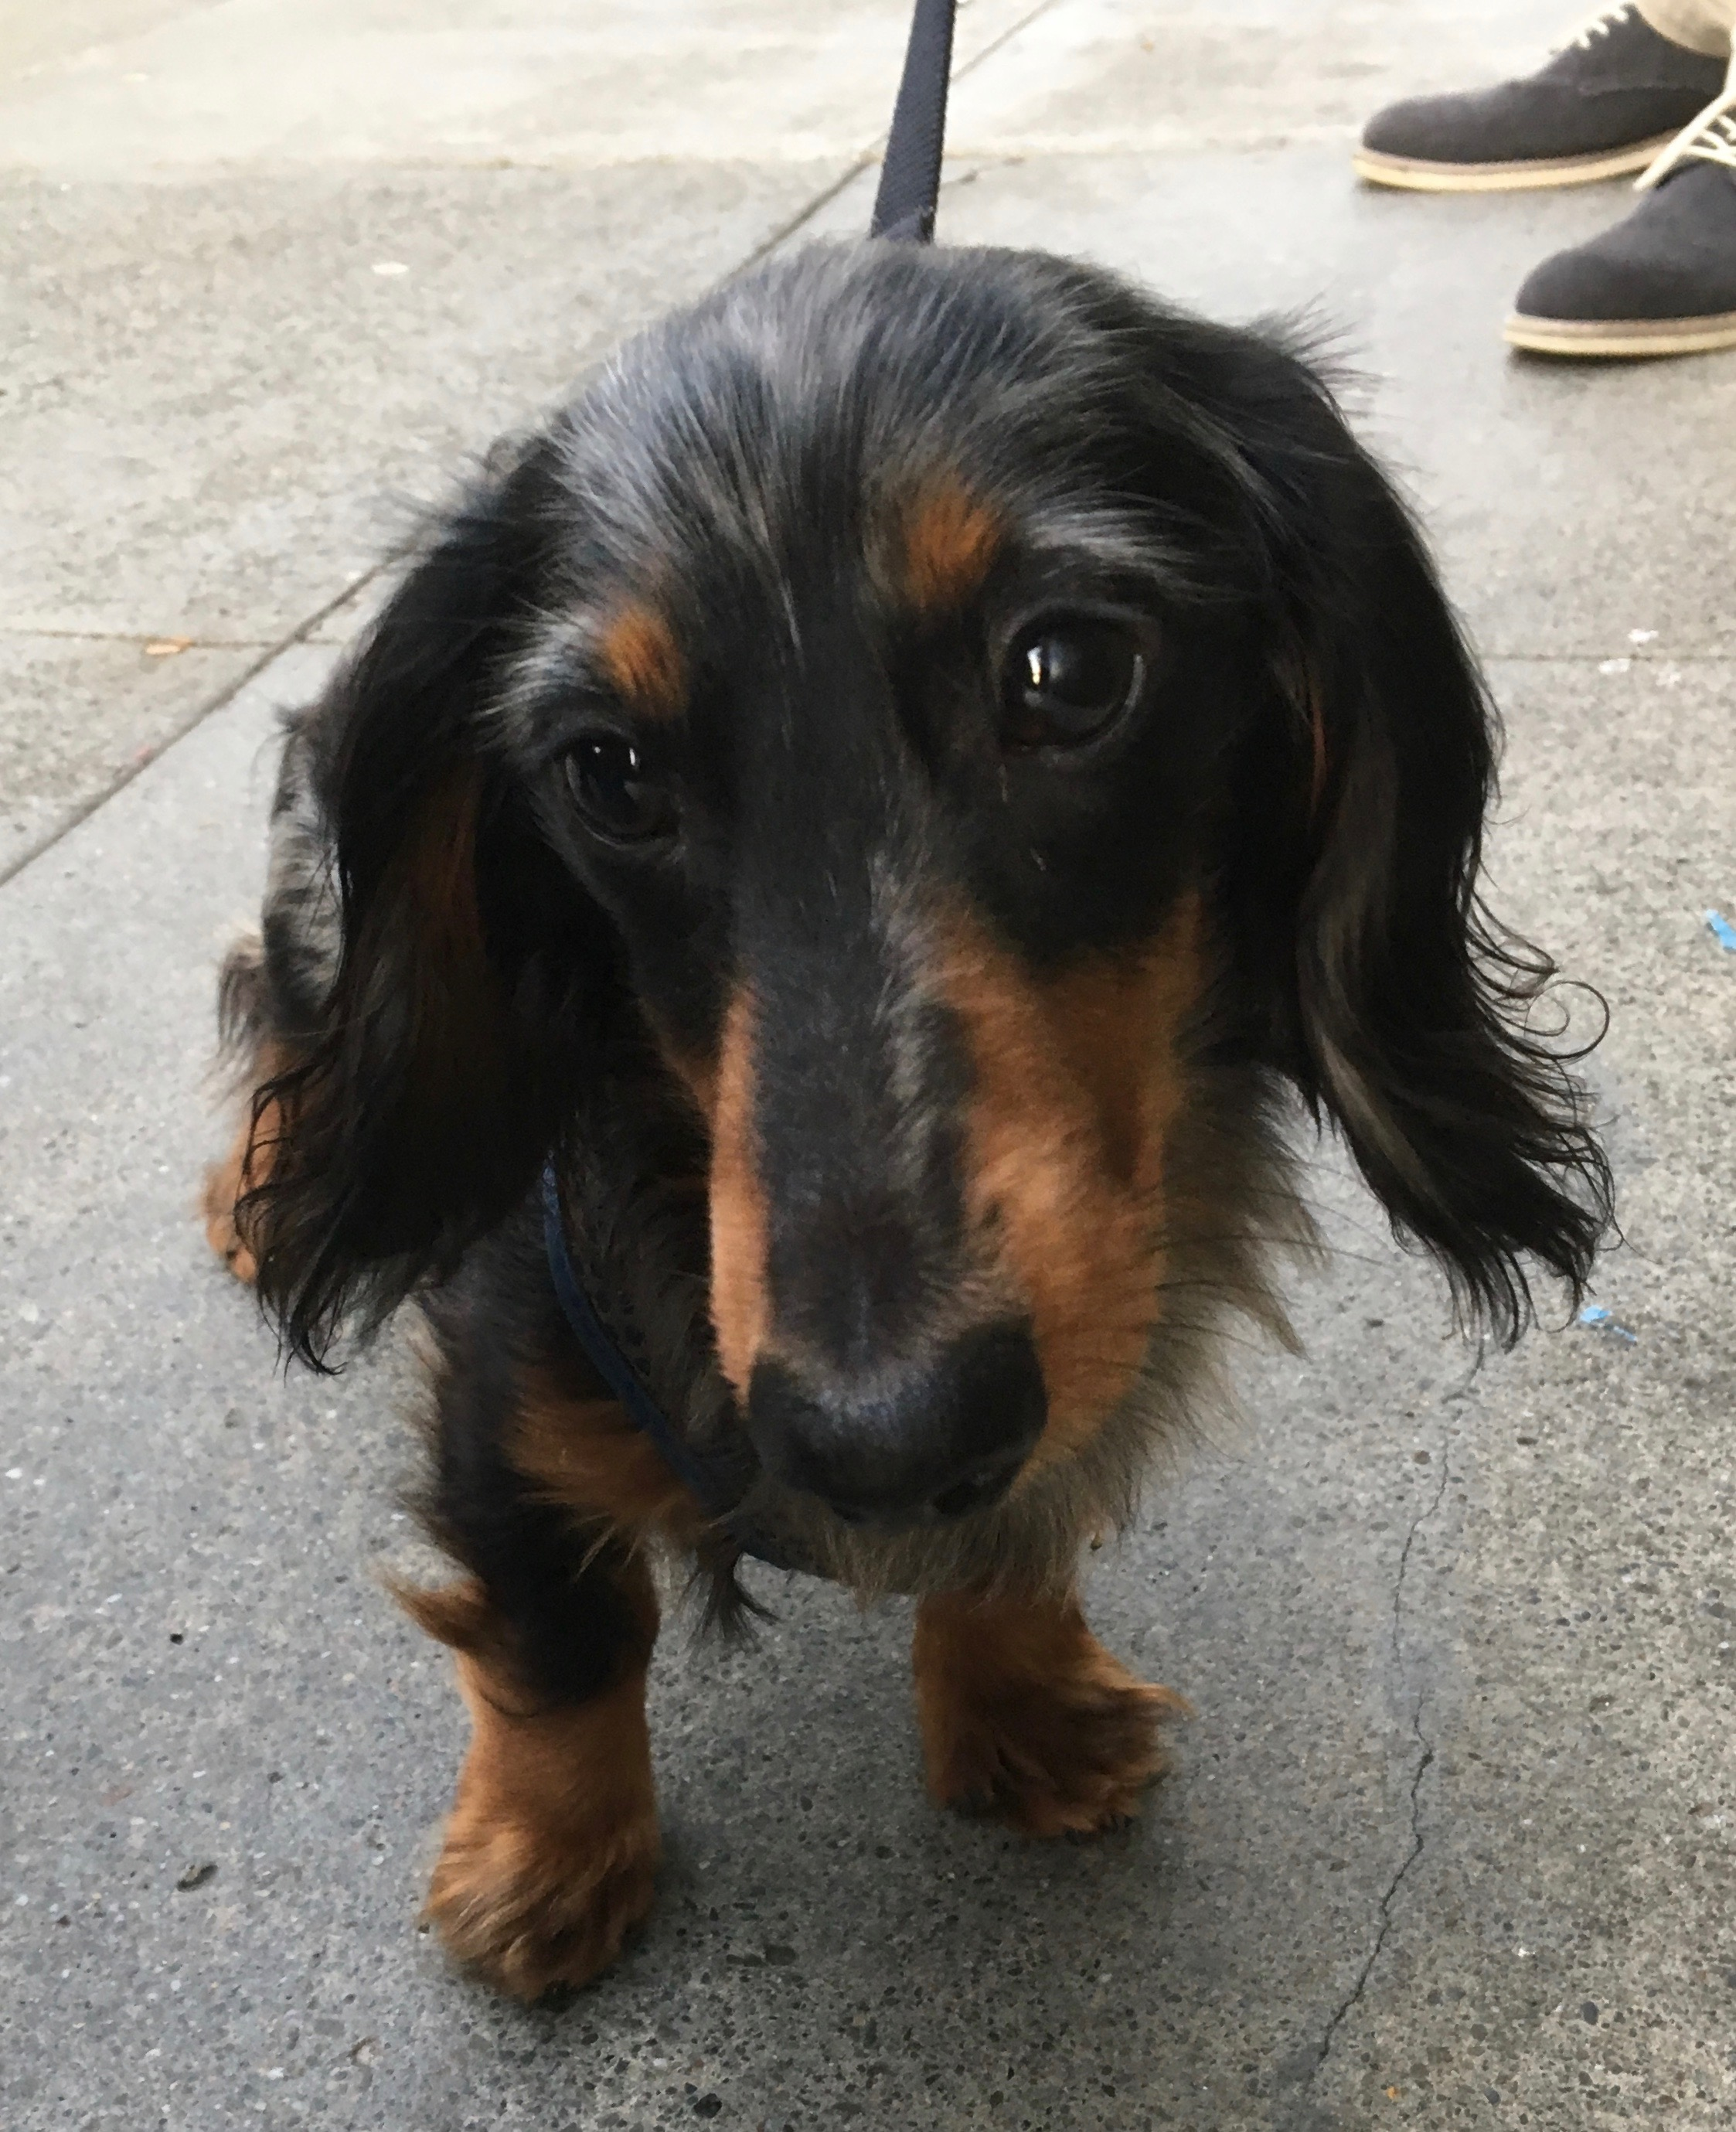 Dapple Dachshund Looking Sad